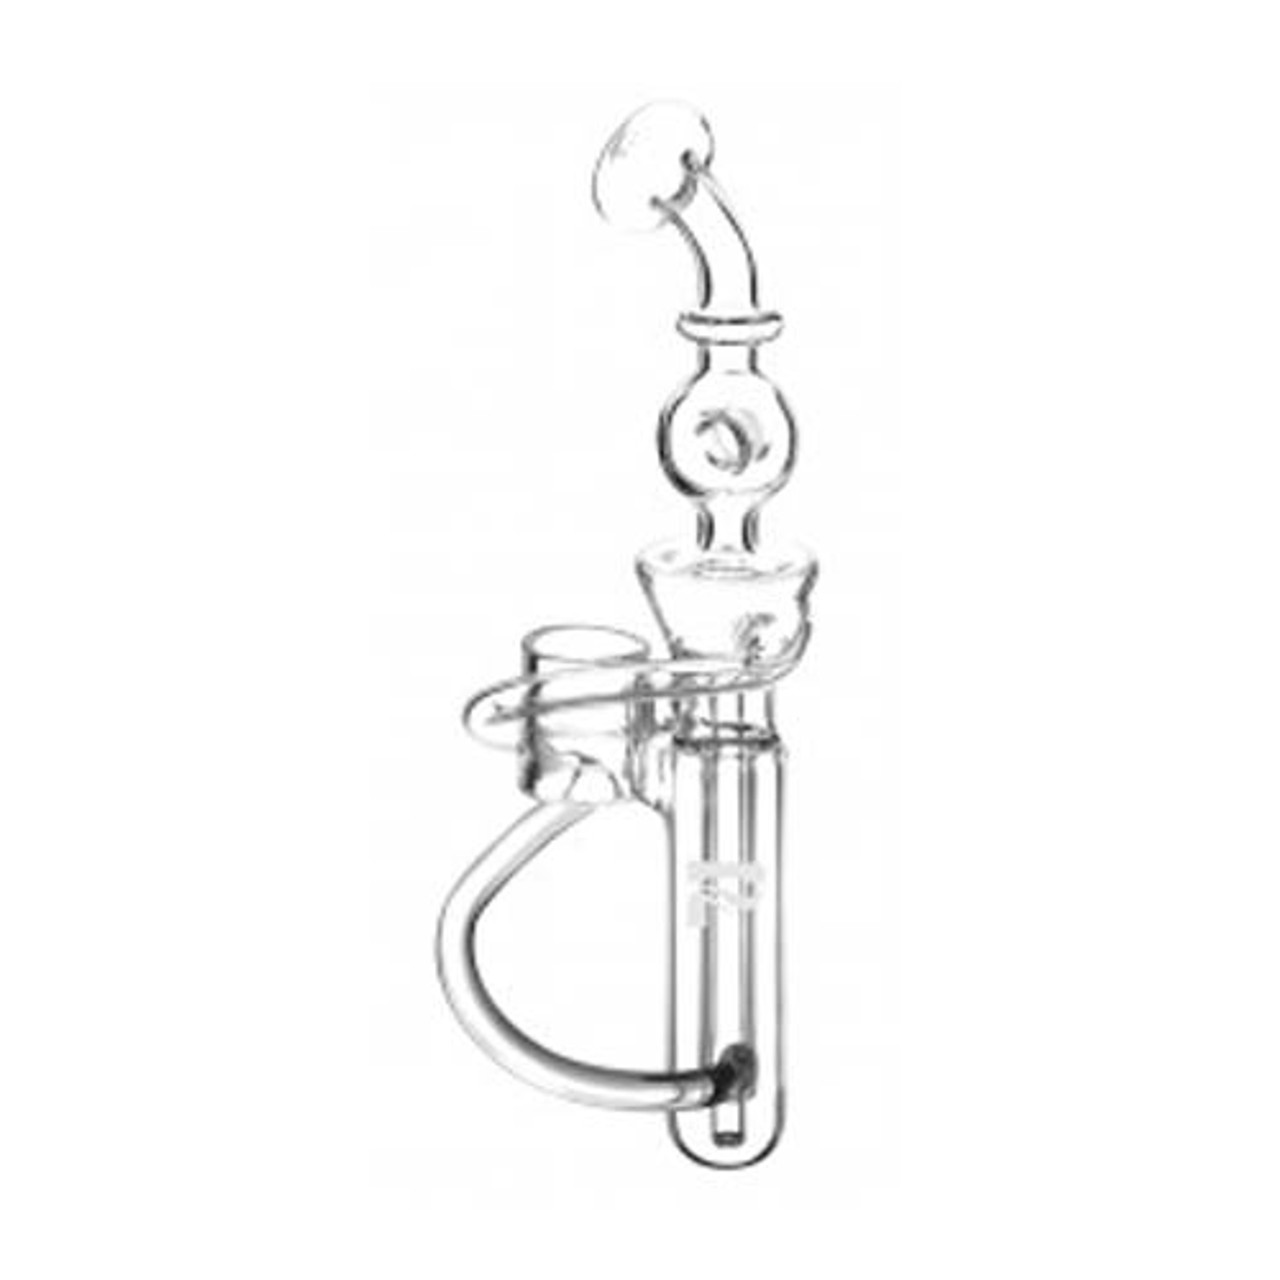 Pulsar Hand E-Nail V3 Glass Recycler Mouthpiece